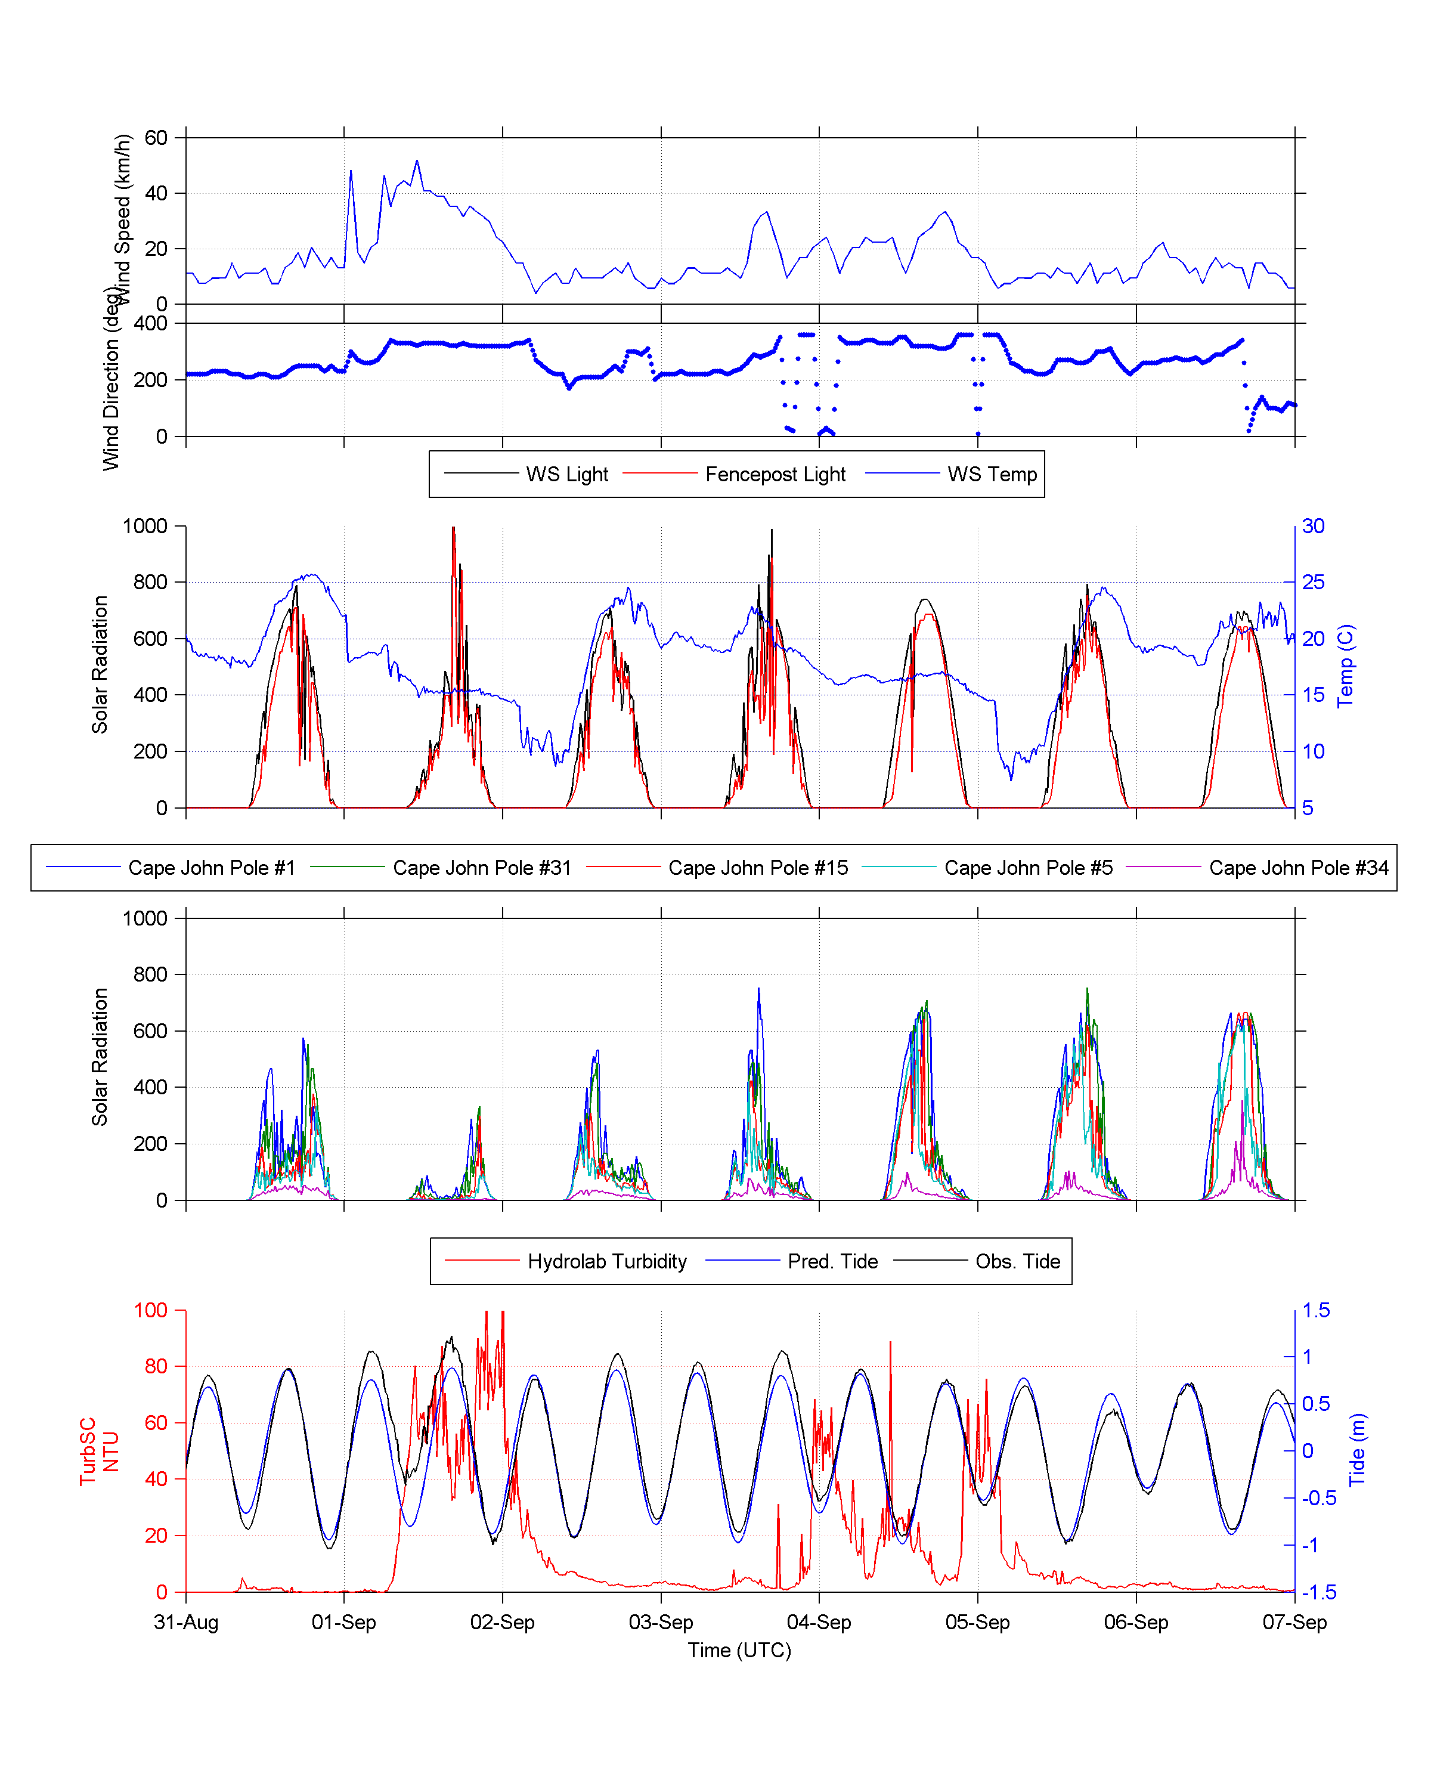 Figure 2 Example of a time series of coast near shore data. Top graph is wind speed and direction. Next is the light sensor comparison between our weather station and a light sensor on a fence post similar to those deployed under water. Next are light sensors at different water depths with #1 being shallow and #34 being the deepest. The bottom plot records the tide level (note the storm surges Sep 1 and 4, with turbidity levels. The increased turbidity limits the amount of light penetrating the water column similar to the effects it has on the green laser of the lidar sensor.